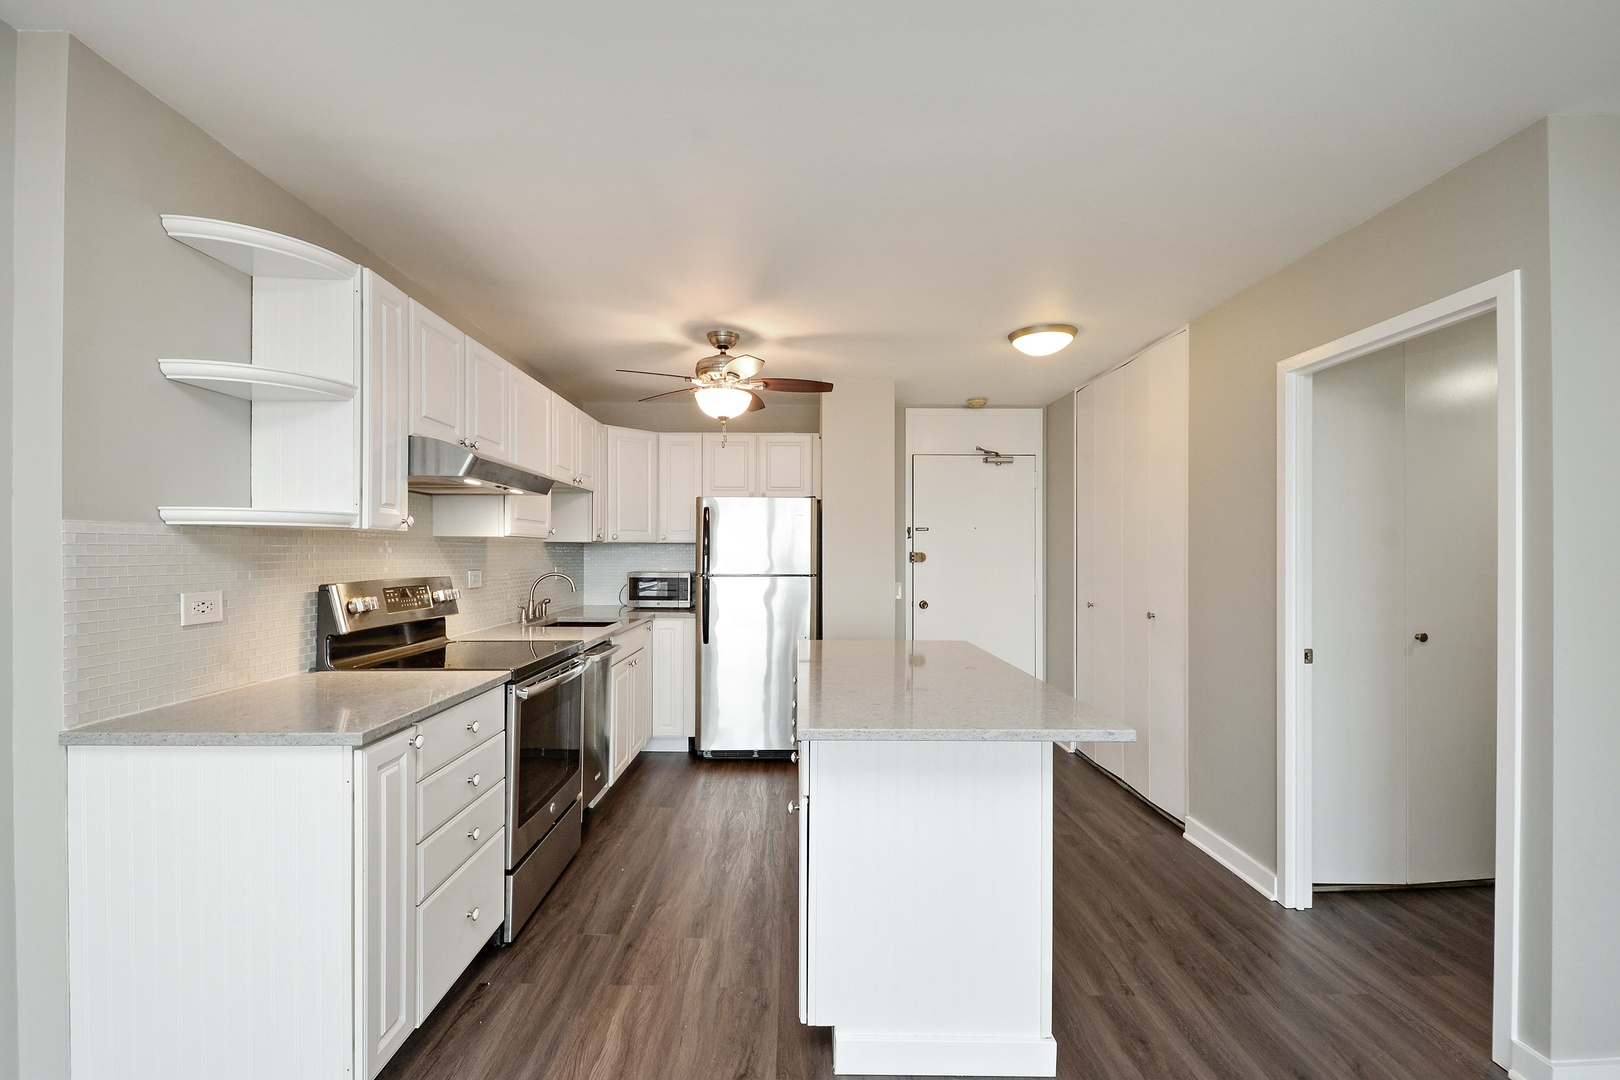 1560 North Sandburg Terrace, #3307, Chicago, IL, 60610 | The Lowe Group